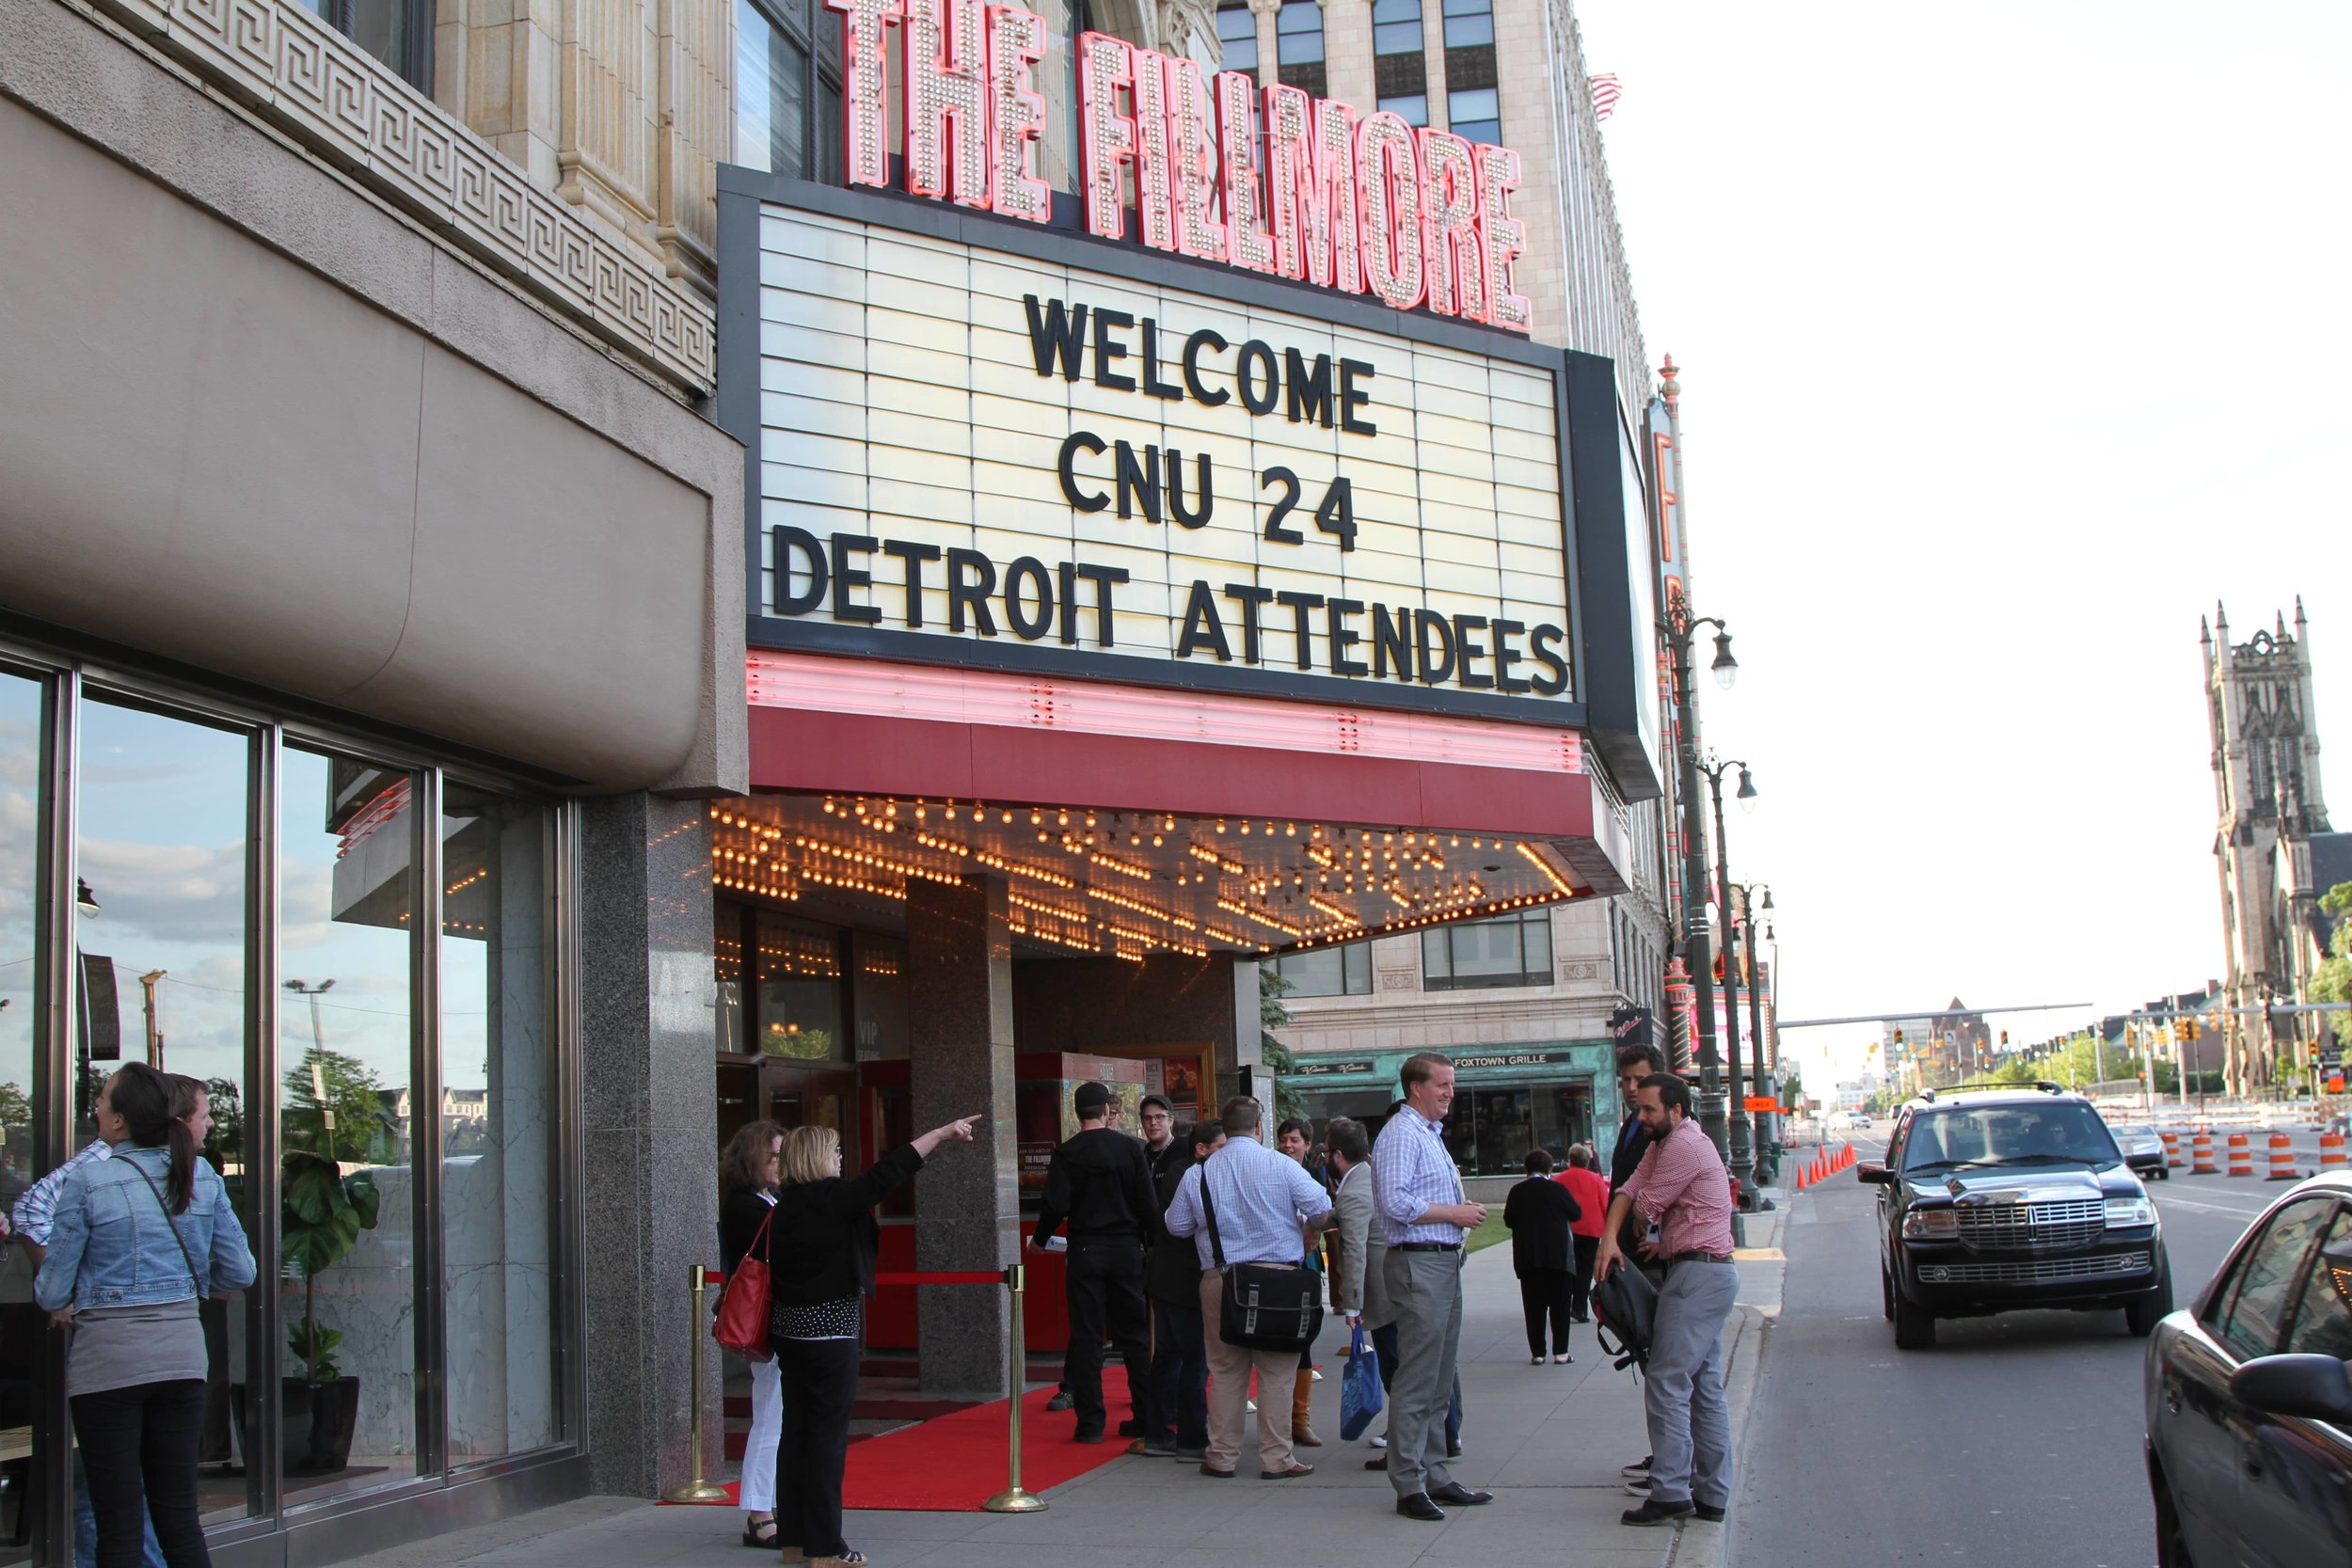 Downtown Detroit is coming back to life. What does that mean for the rest of the region? (Source: Johnny Sanphillippo)